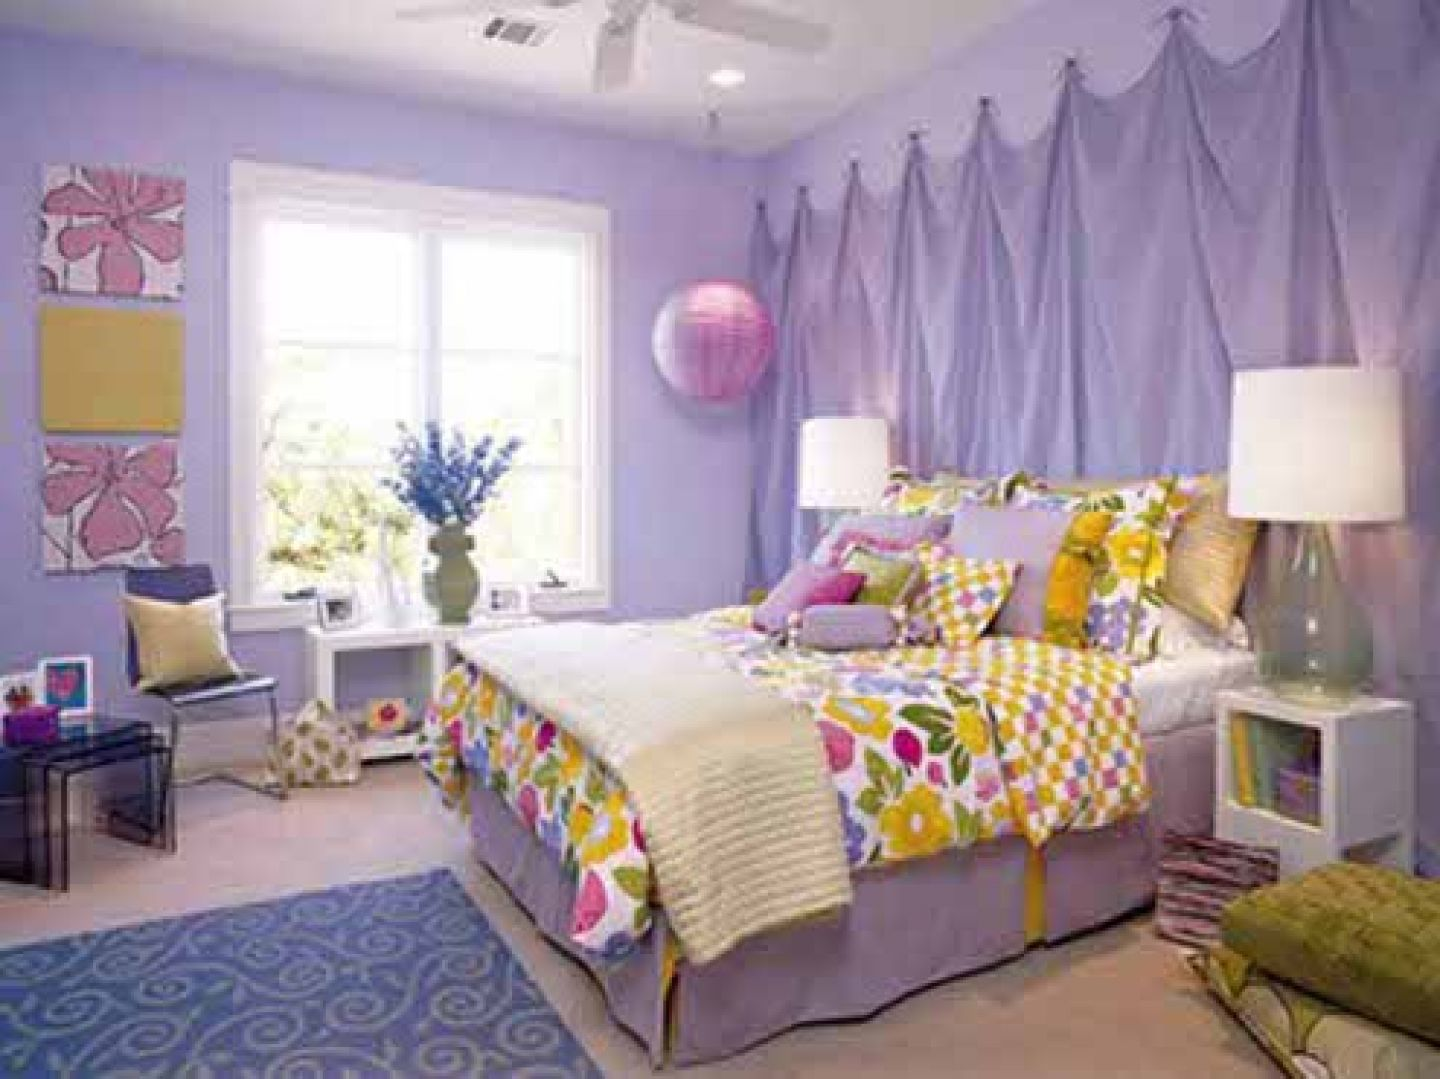 Graceful Girl Bedroom With Bed also Big Table Lamp and Flower Wall Decor